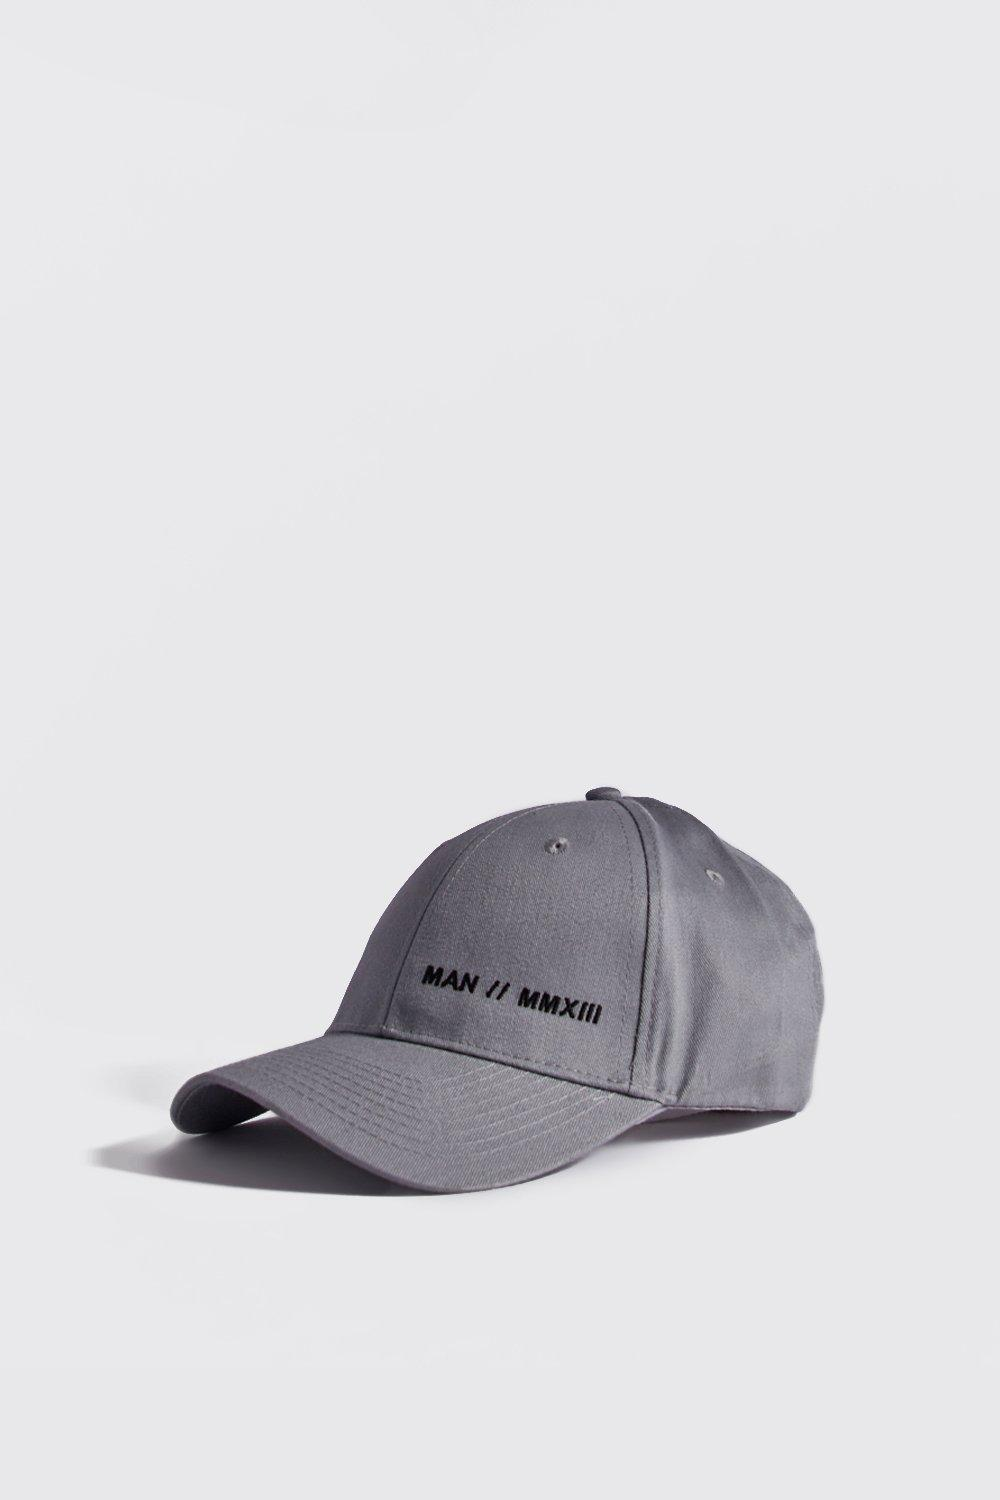 MAN MMXIII Embroidered Cap